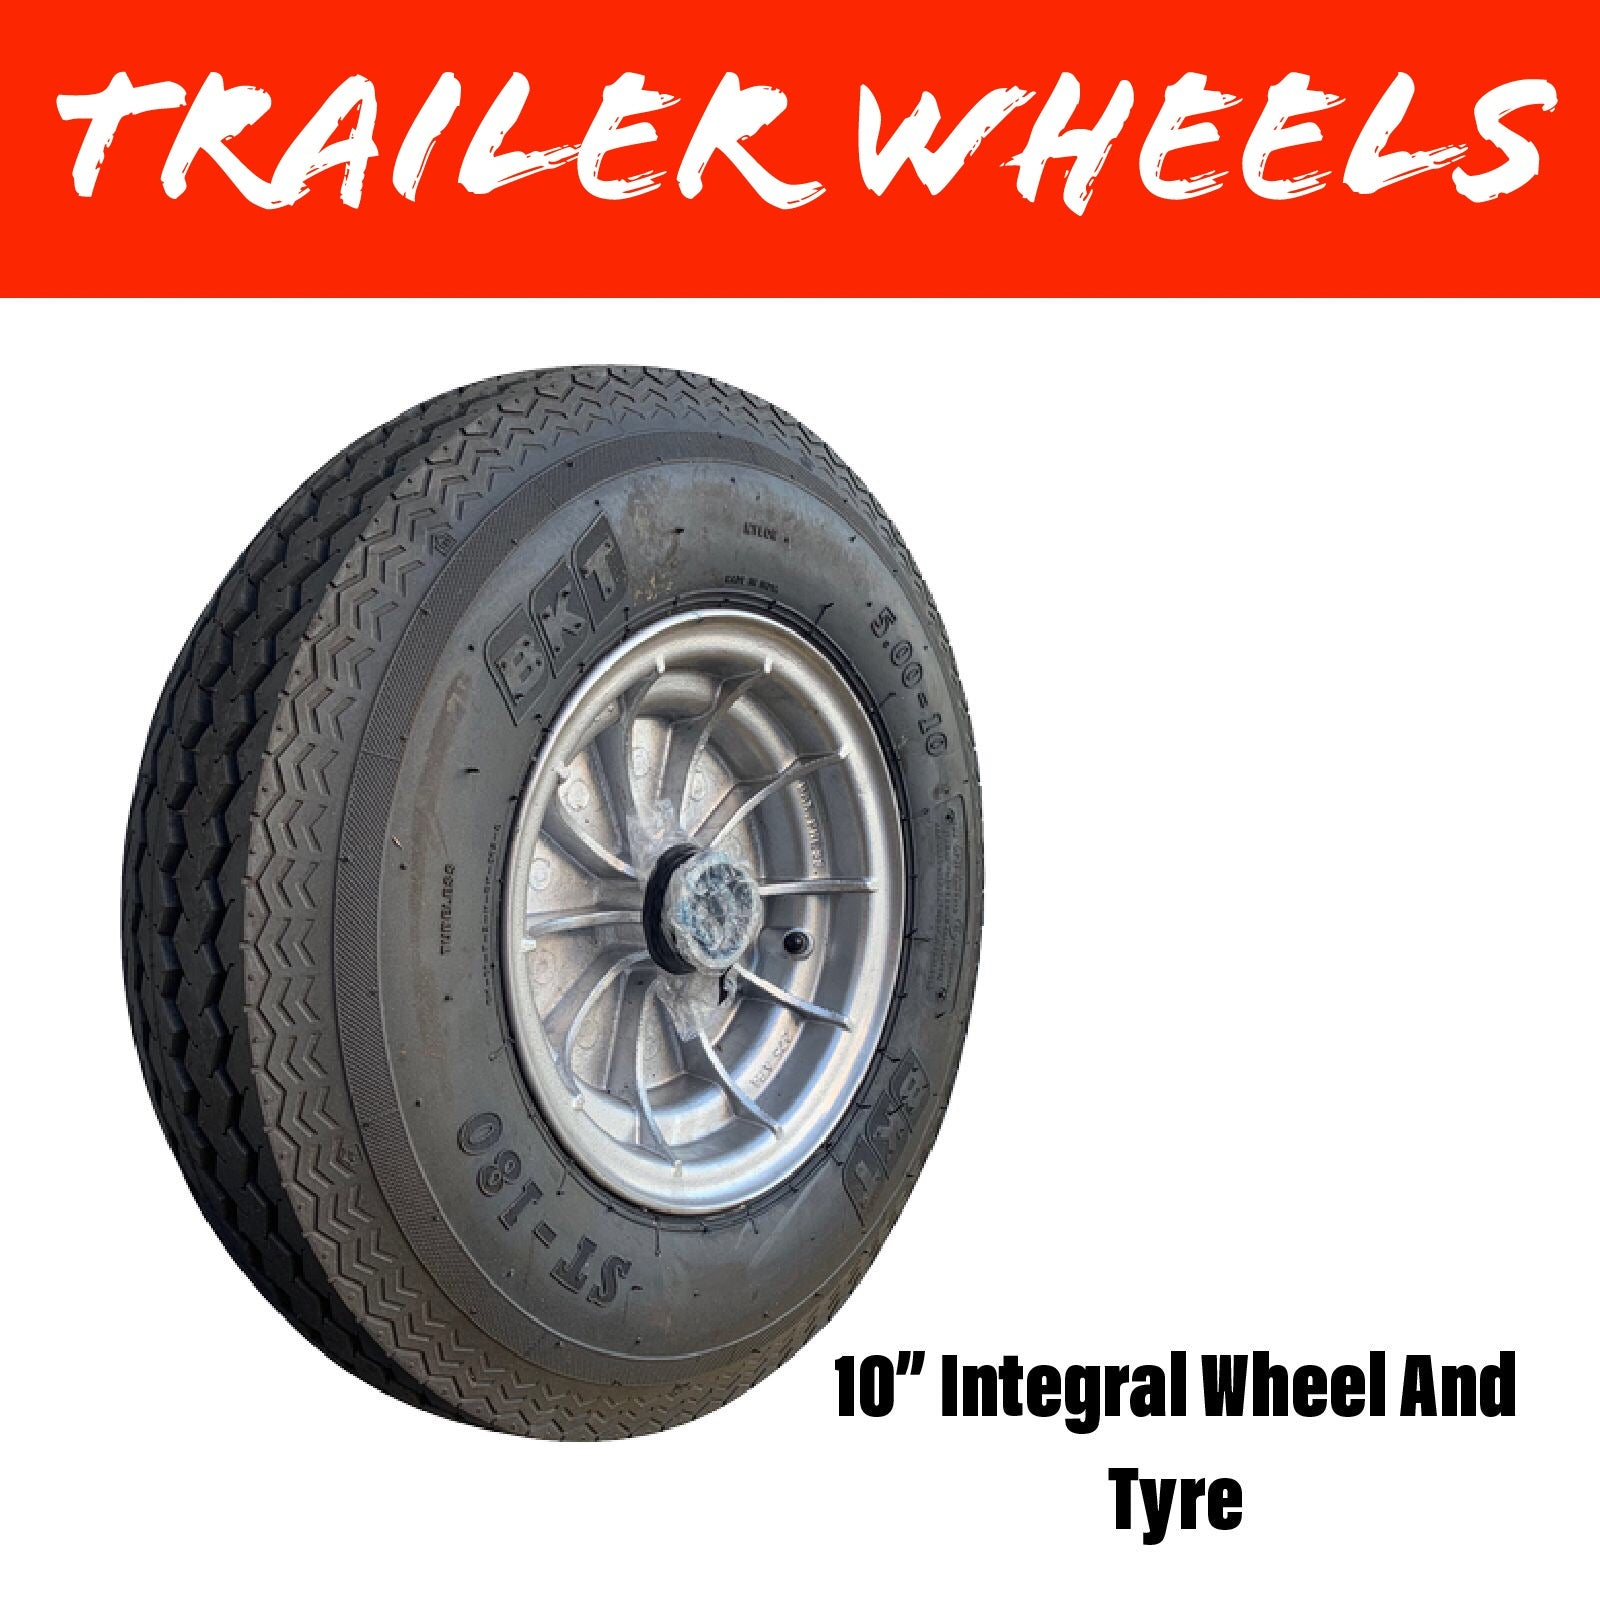 10 INCH INTEGRAL Wheel and Tyre